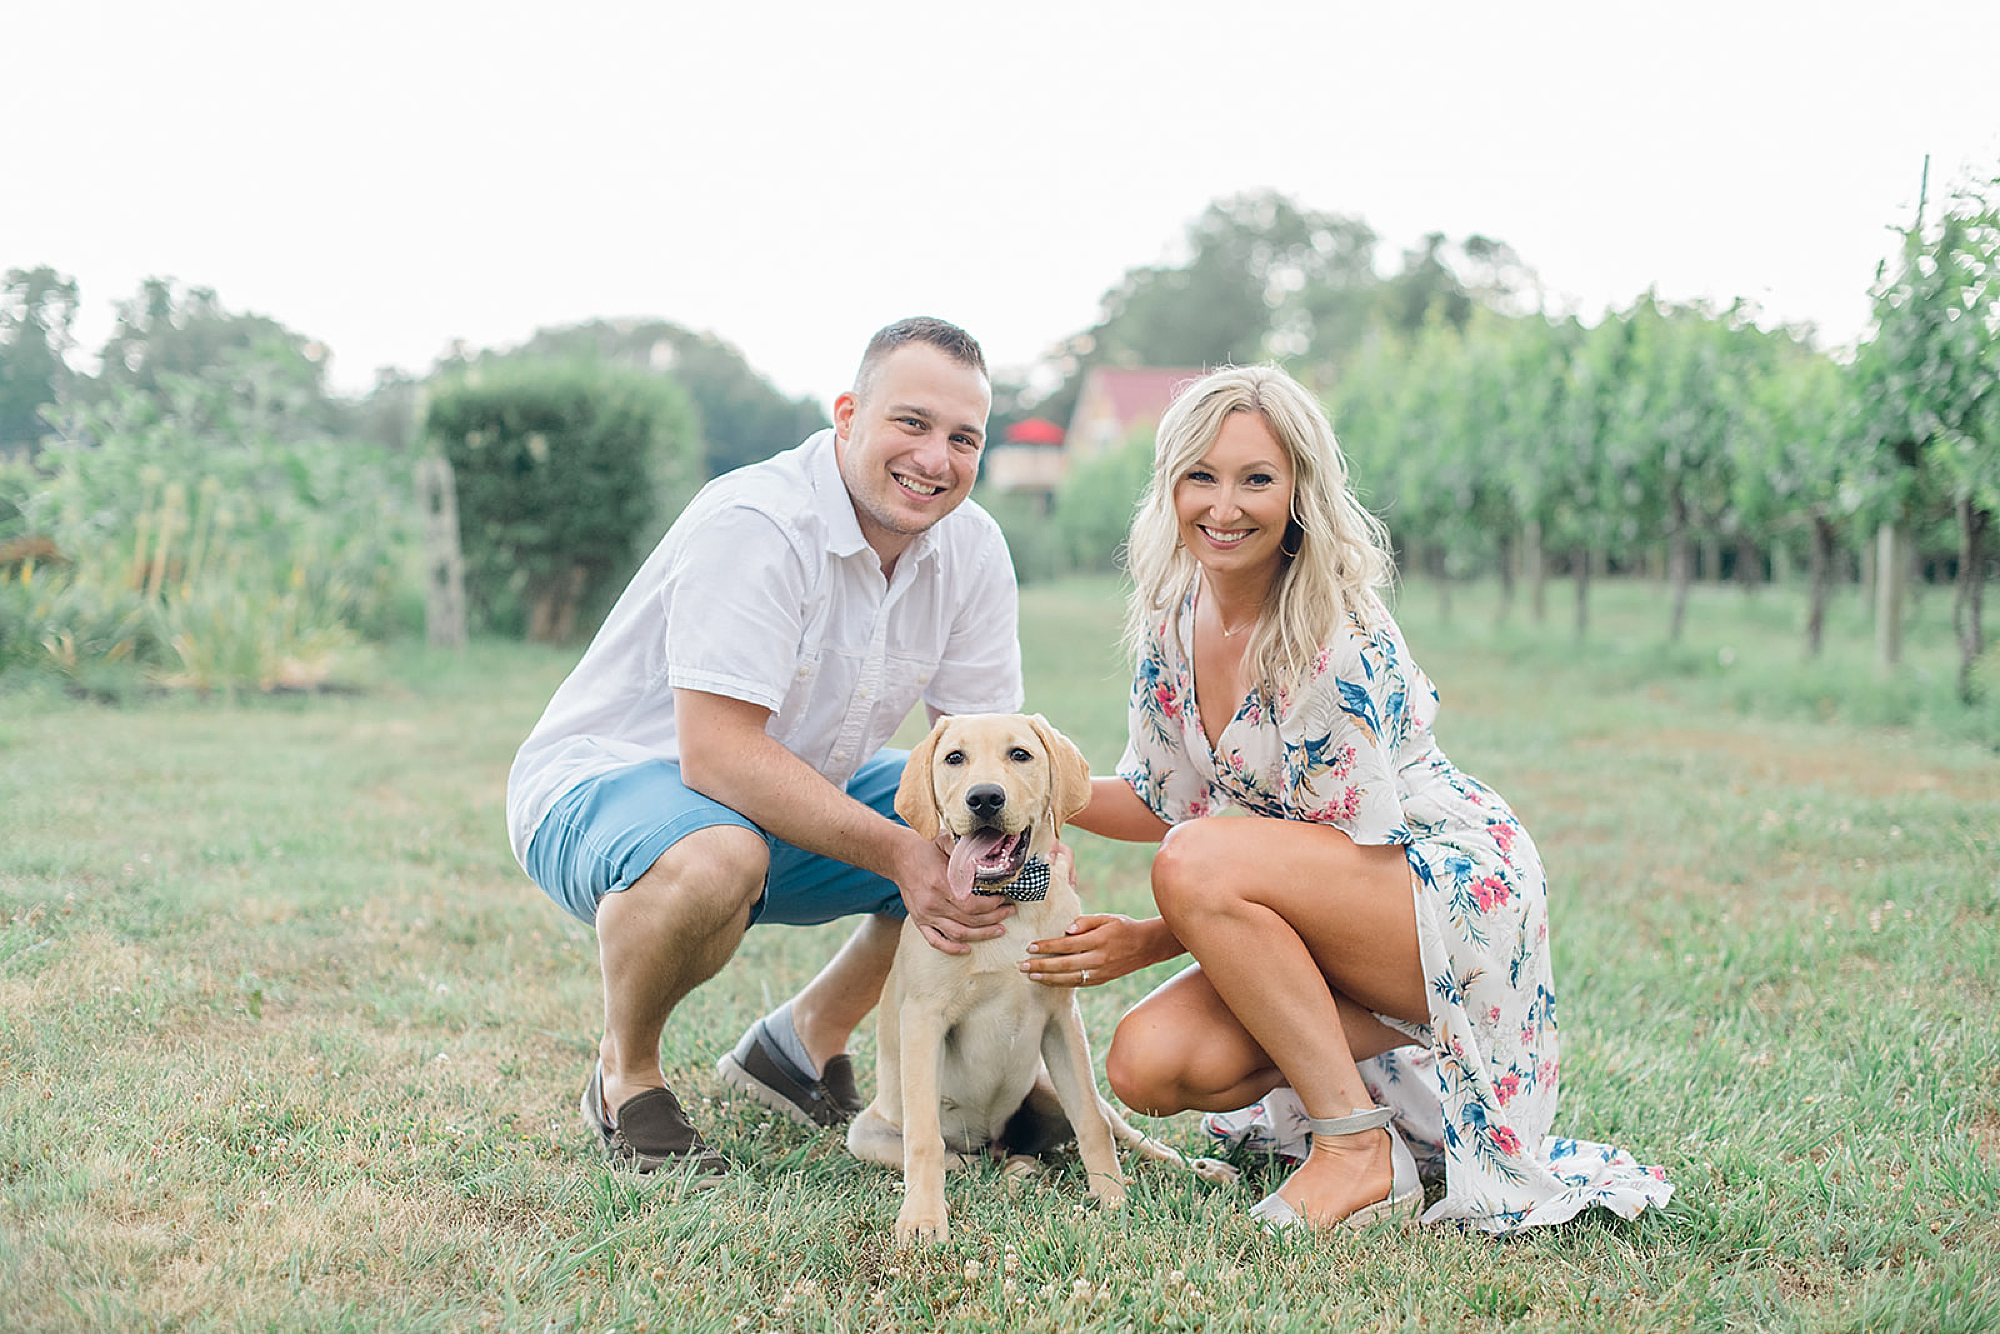 Willow Creek Winery New Jersey Engagement Photography with Dog by Magdalena Studios 0001